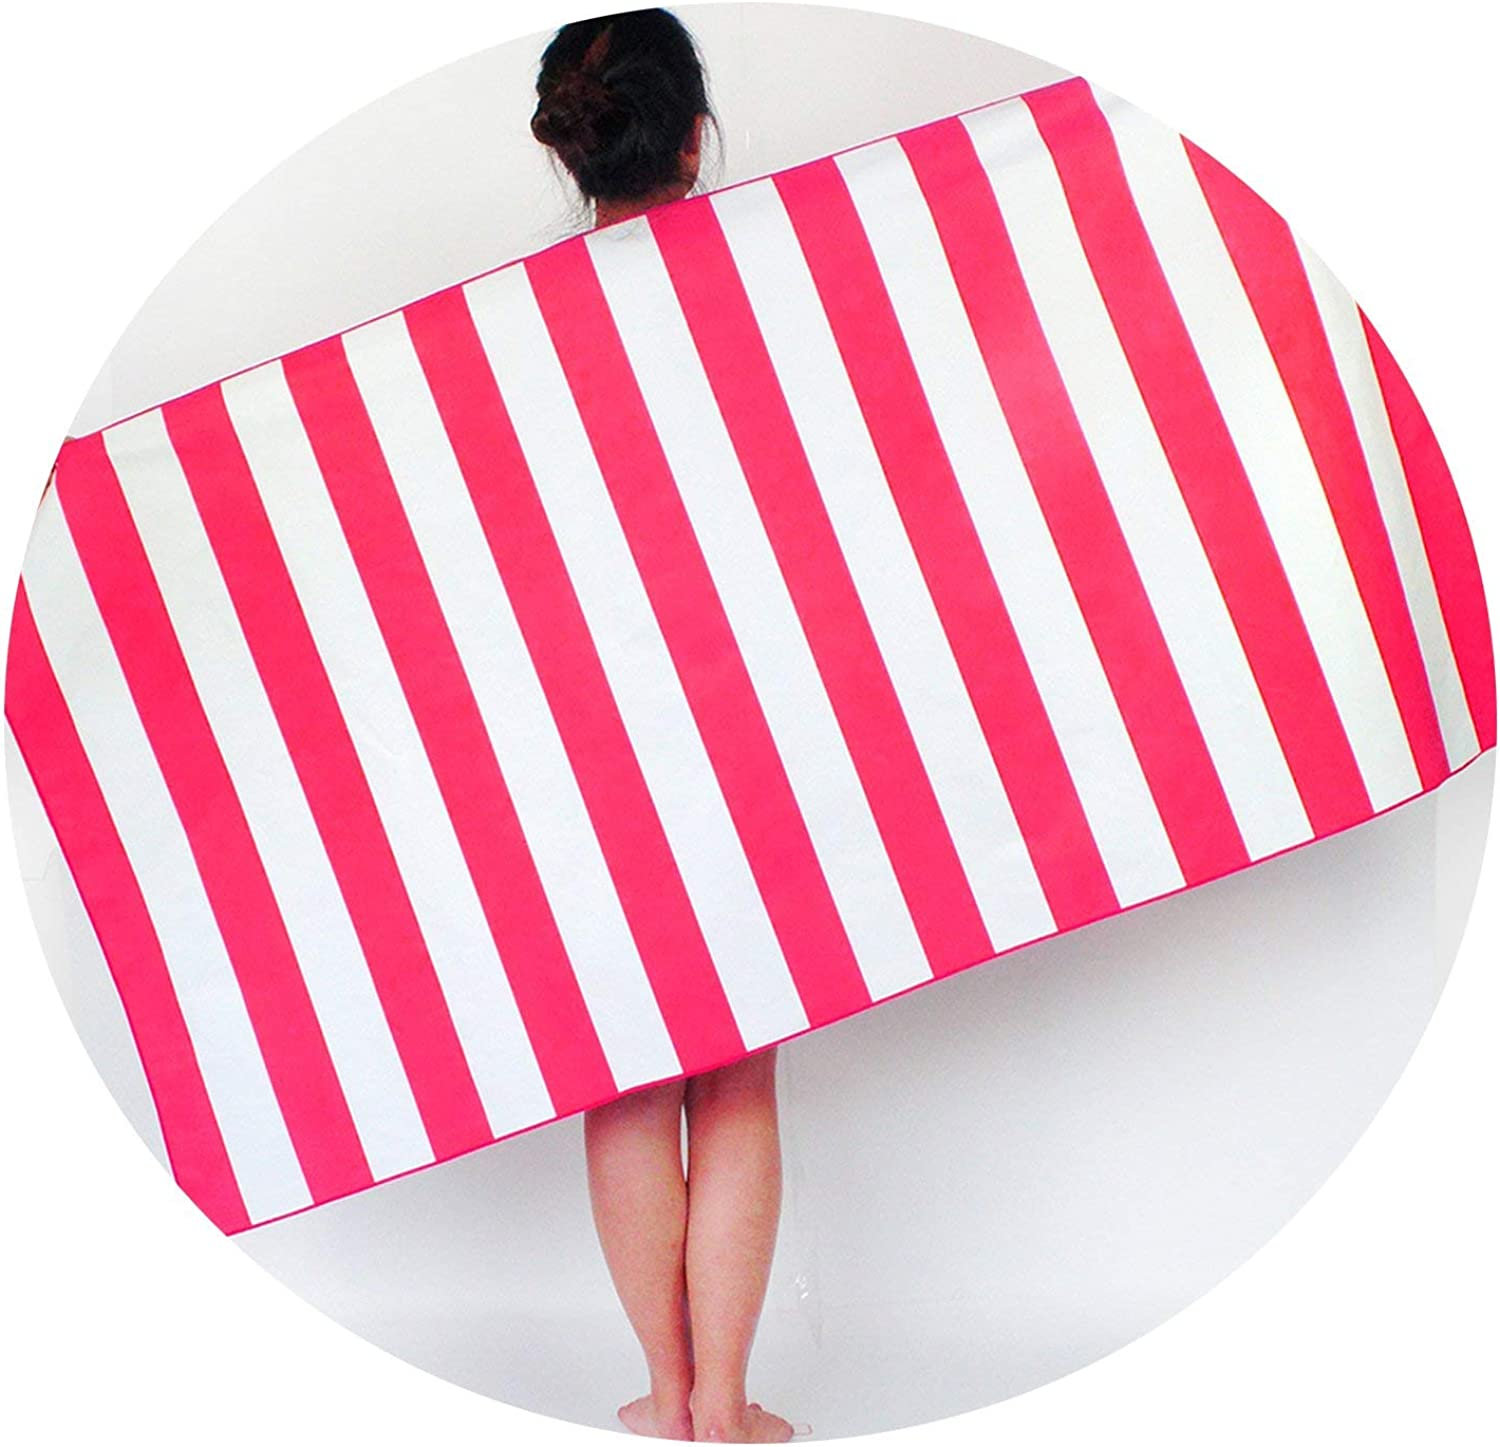 Microfiber Soft Bath Towel Fashion Quick Dry Stripe Beach Towel for Summer Beach Travel Swim Pool Camping Outdoors